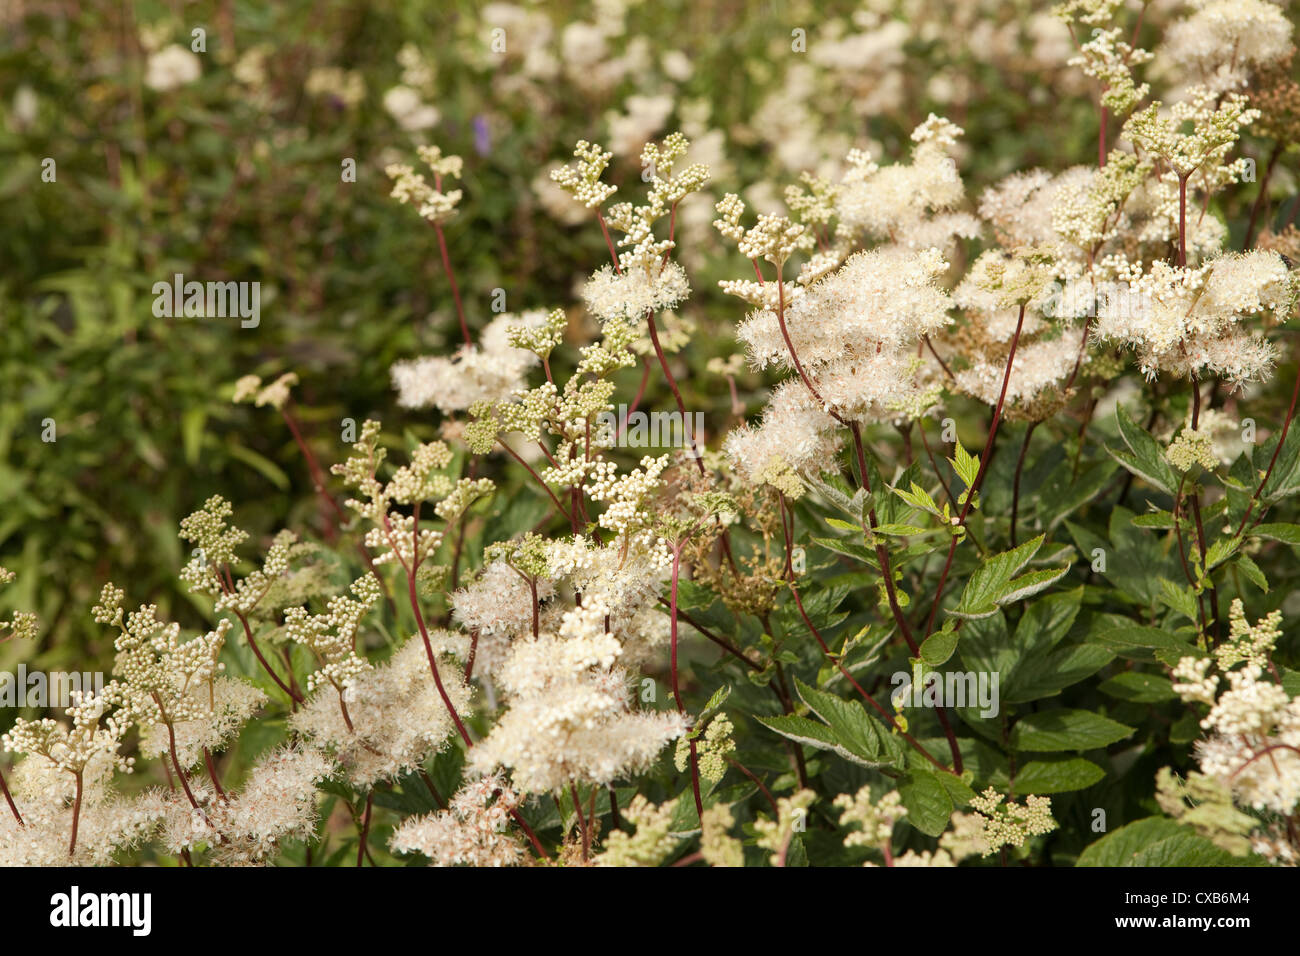 Meadowsweet Filipendula ulmaria growing in Moor House Upper Teesdale NNR, County Durham, UK - Stock Image